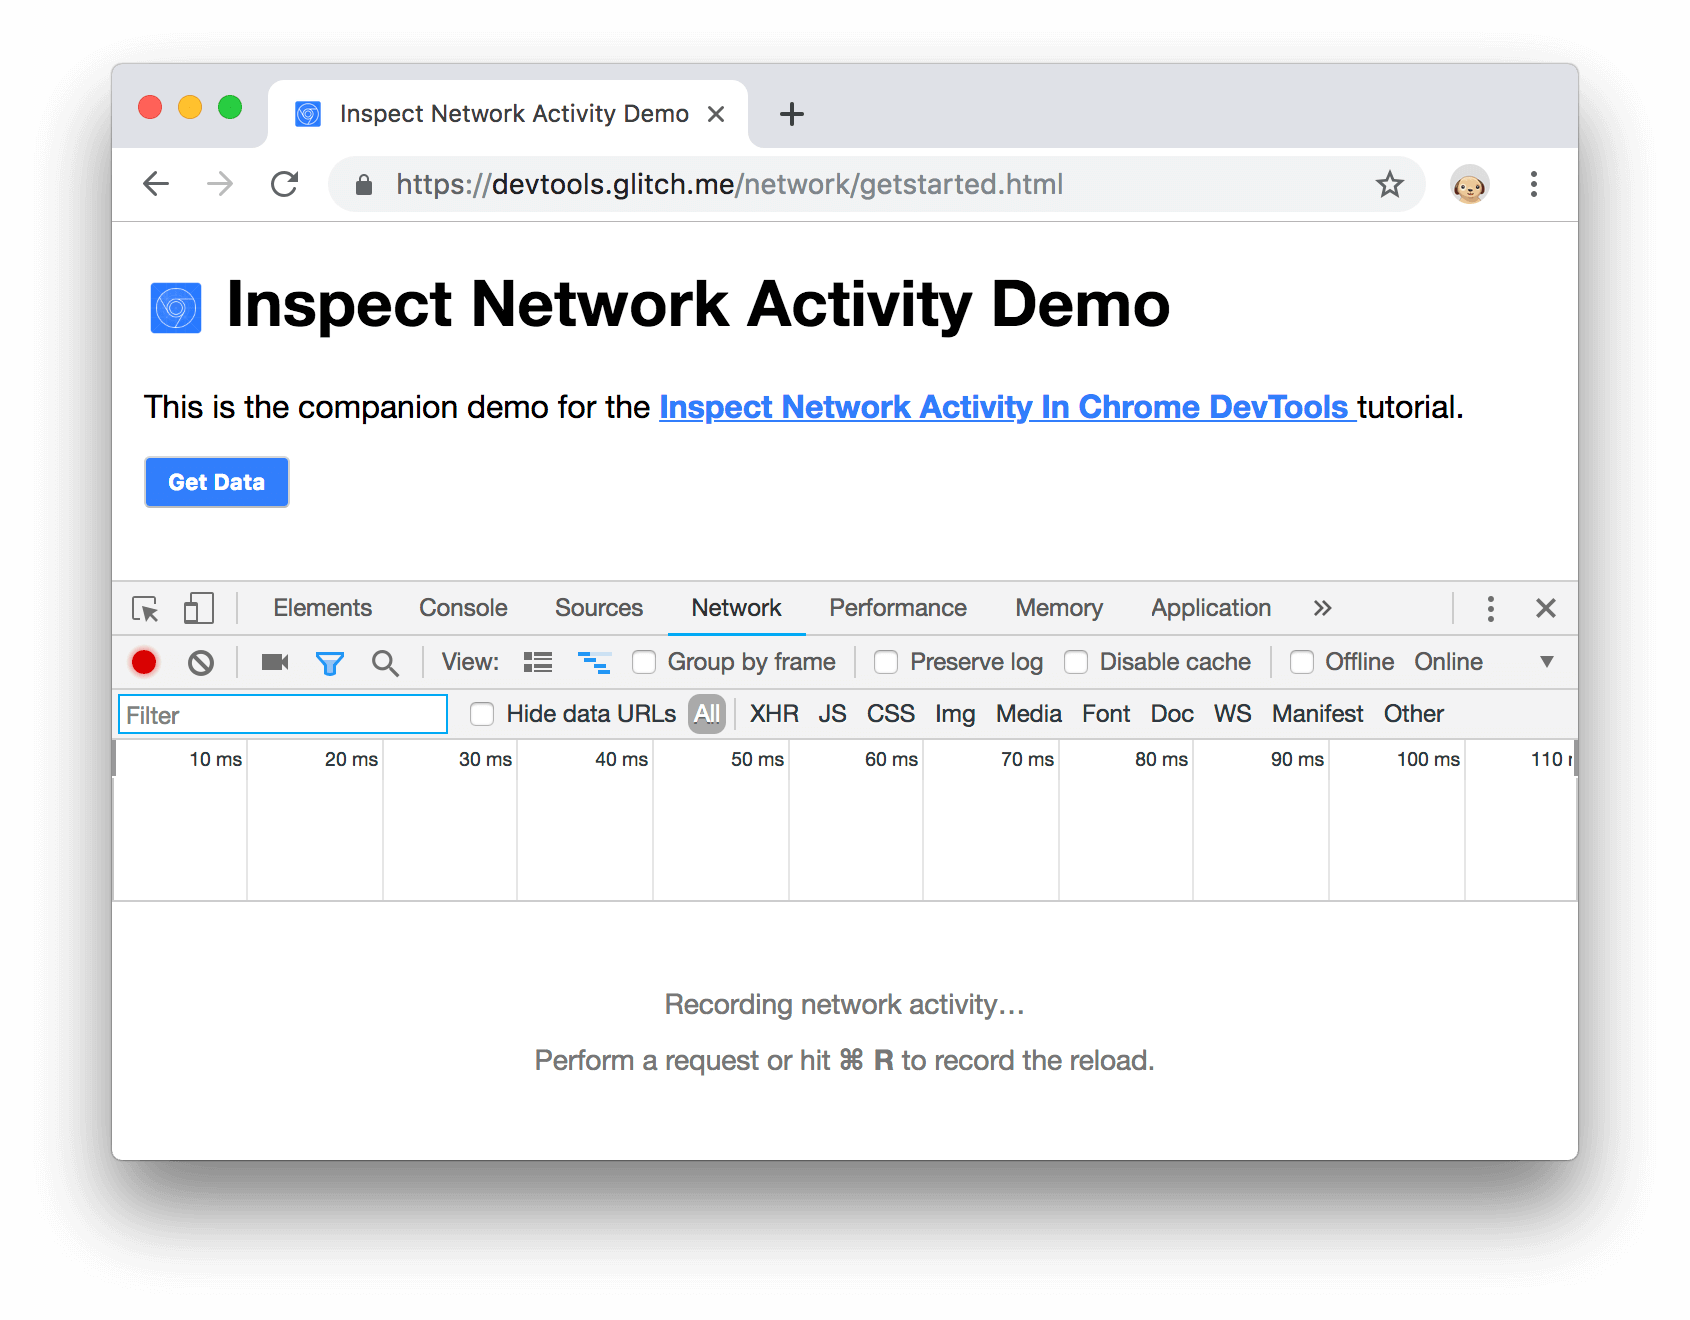 DevTools docked to the bottom of the window